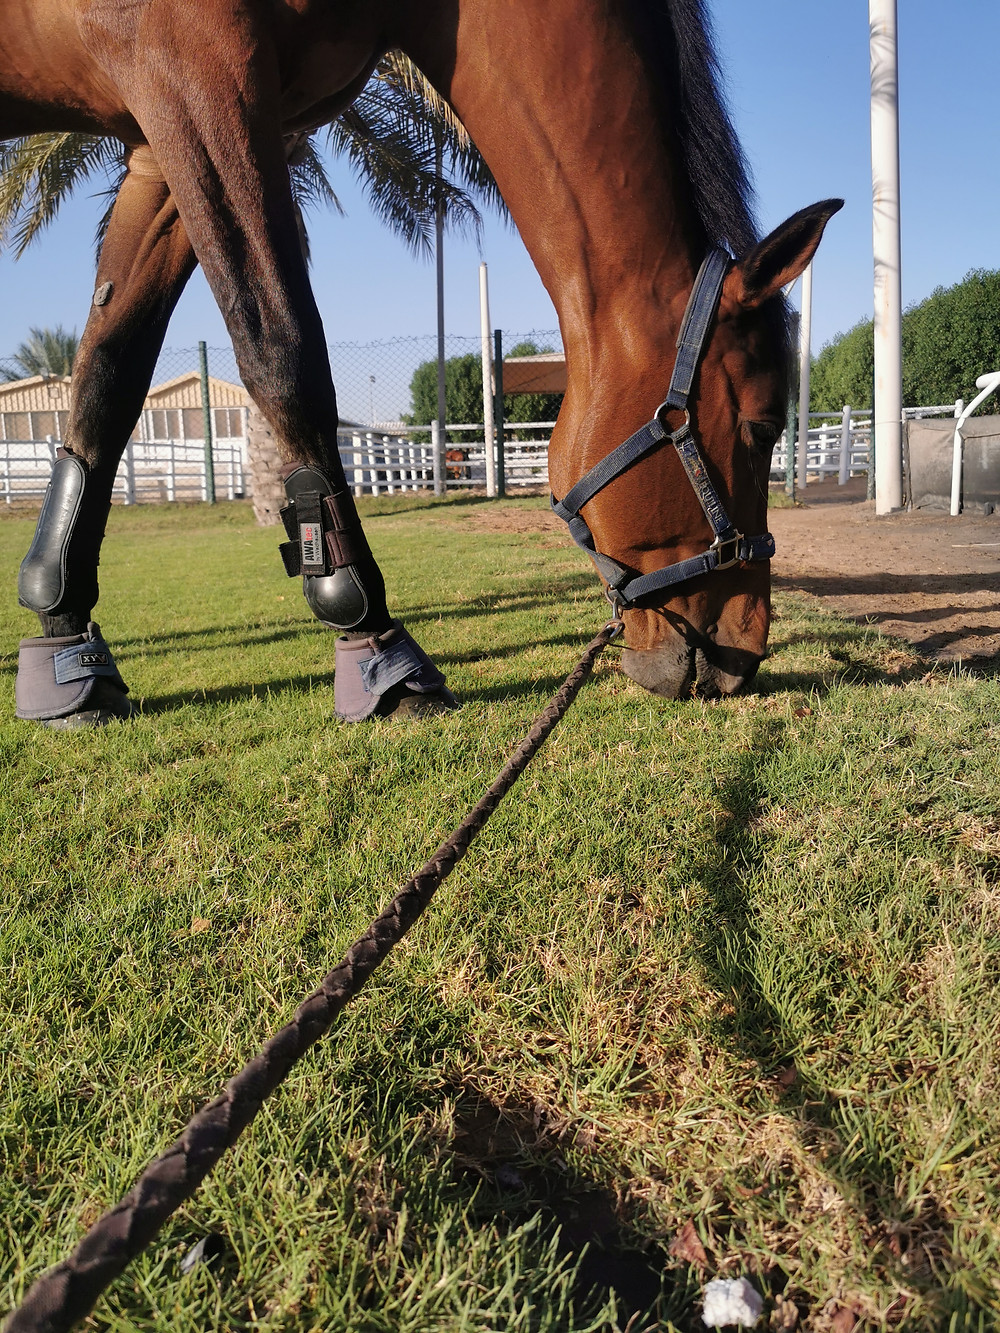 Horse eating, horse grazing, bay horse, Emirates Equestrian Center